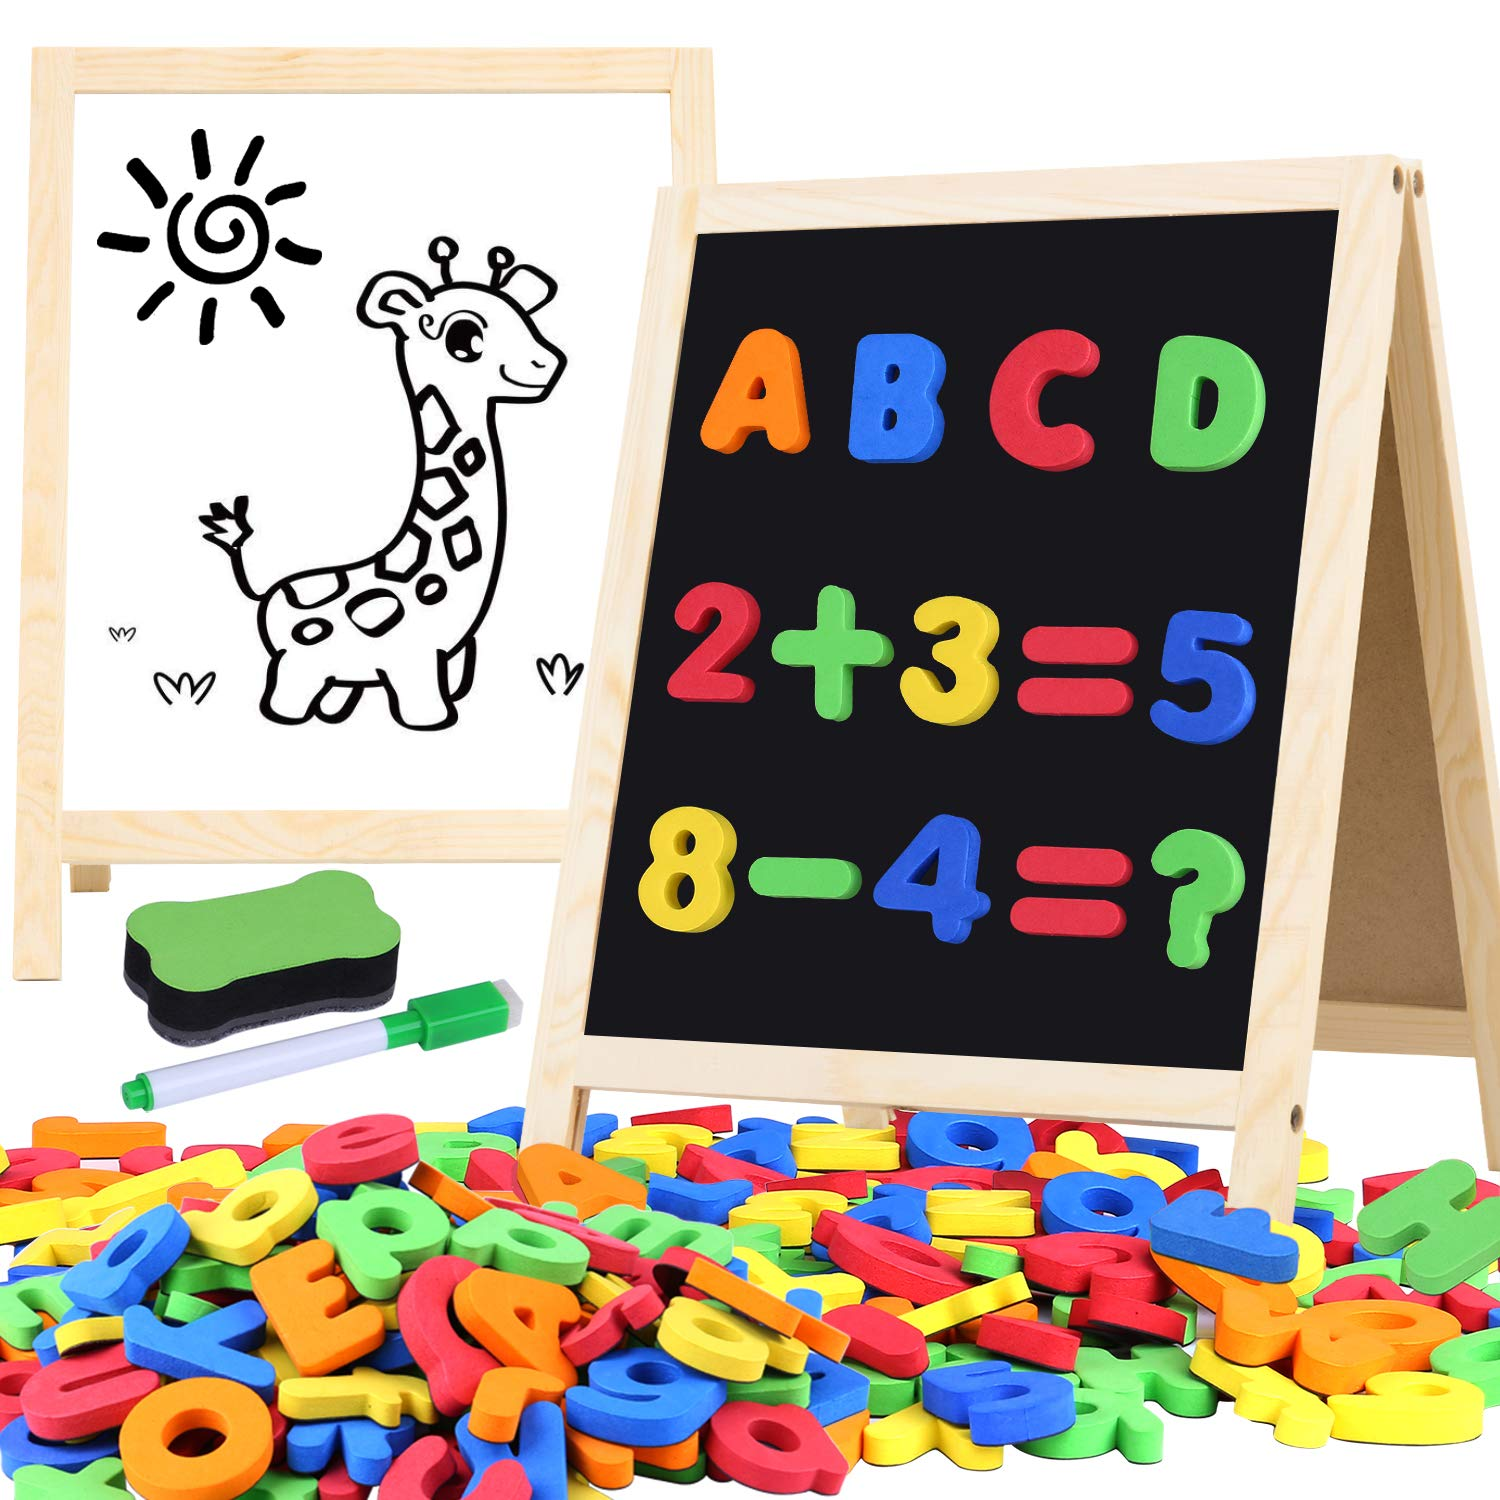 Giftinthebox Magnetic Letters and Numbers for Toddlers with Easels, 133 Pcs ABC Alphabets Magnets and Dry Erase Magnetic Double-Side Board, Kids Educational Classroom Set Preschool Learning Toys by Giftinthebox